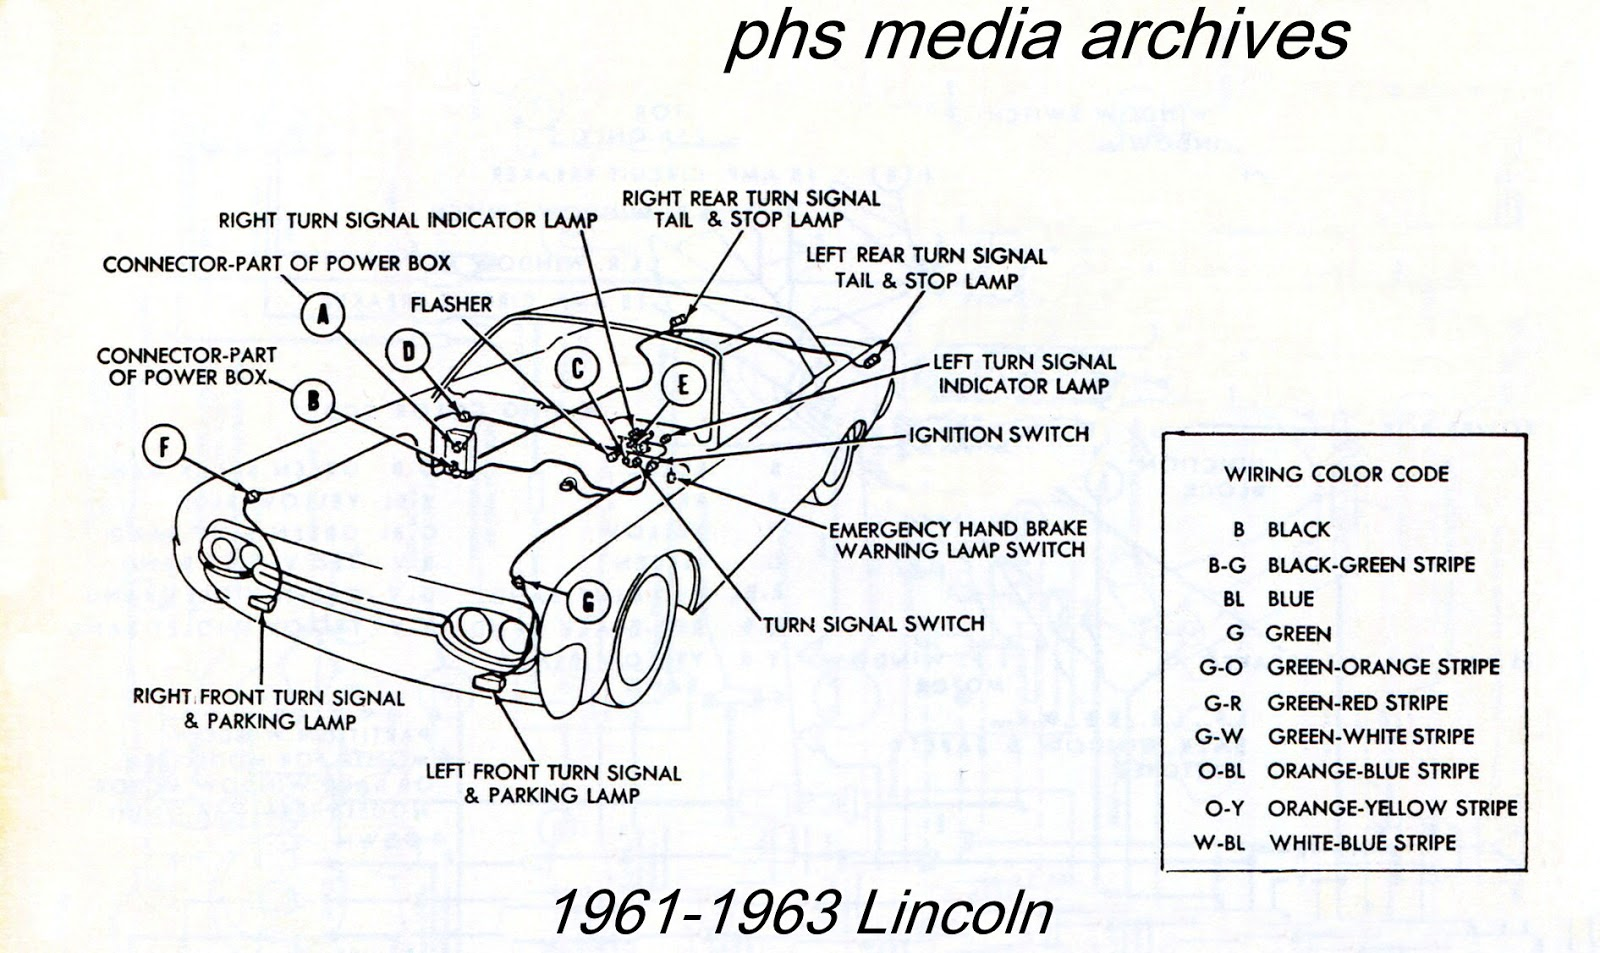 Tech Series 1960 1964 Lincoln Wiring Diagrams Phscollectorcarworld Image 63 Vette Diagram We Do Not Know Why The Company Chose To Label As 1963 And Then Supply A Separate For 1961 Later Cars